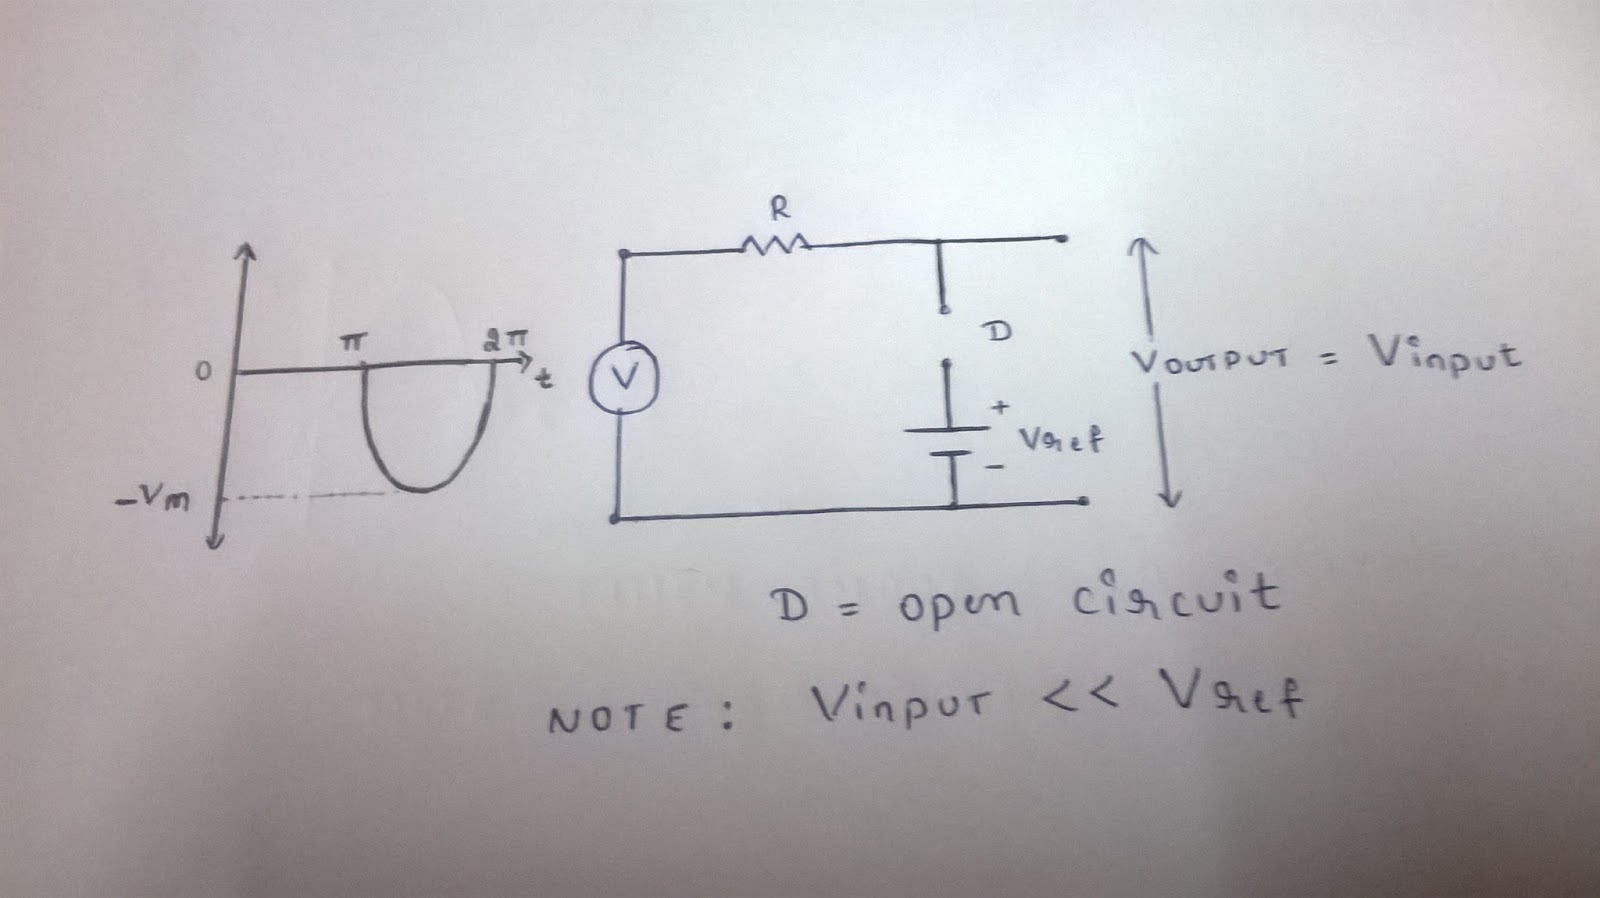 Basic clipping Circuits: Analysis of a Basic Diode Clipping Circuit